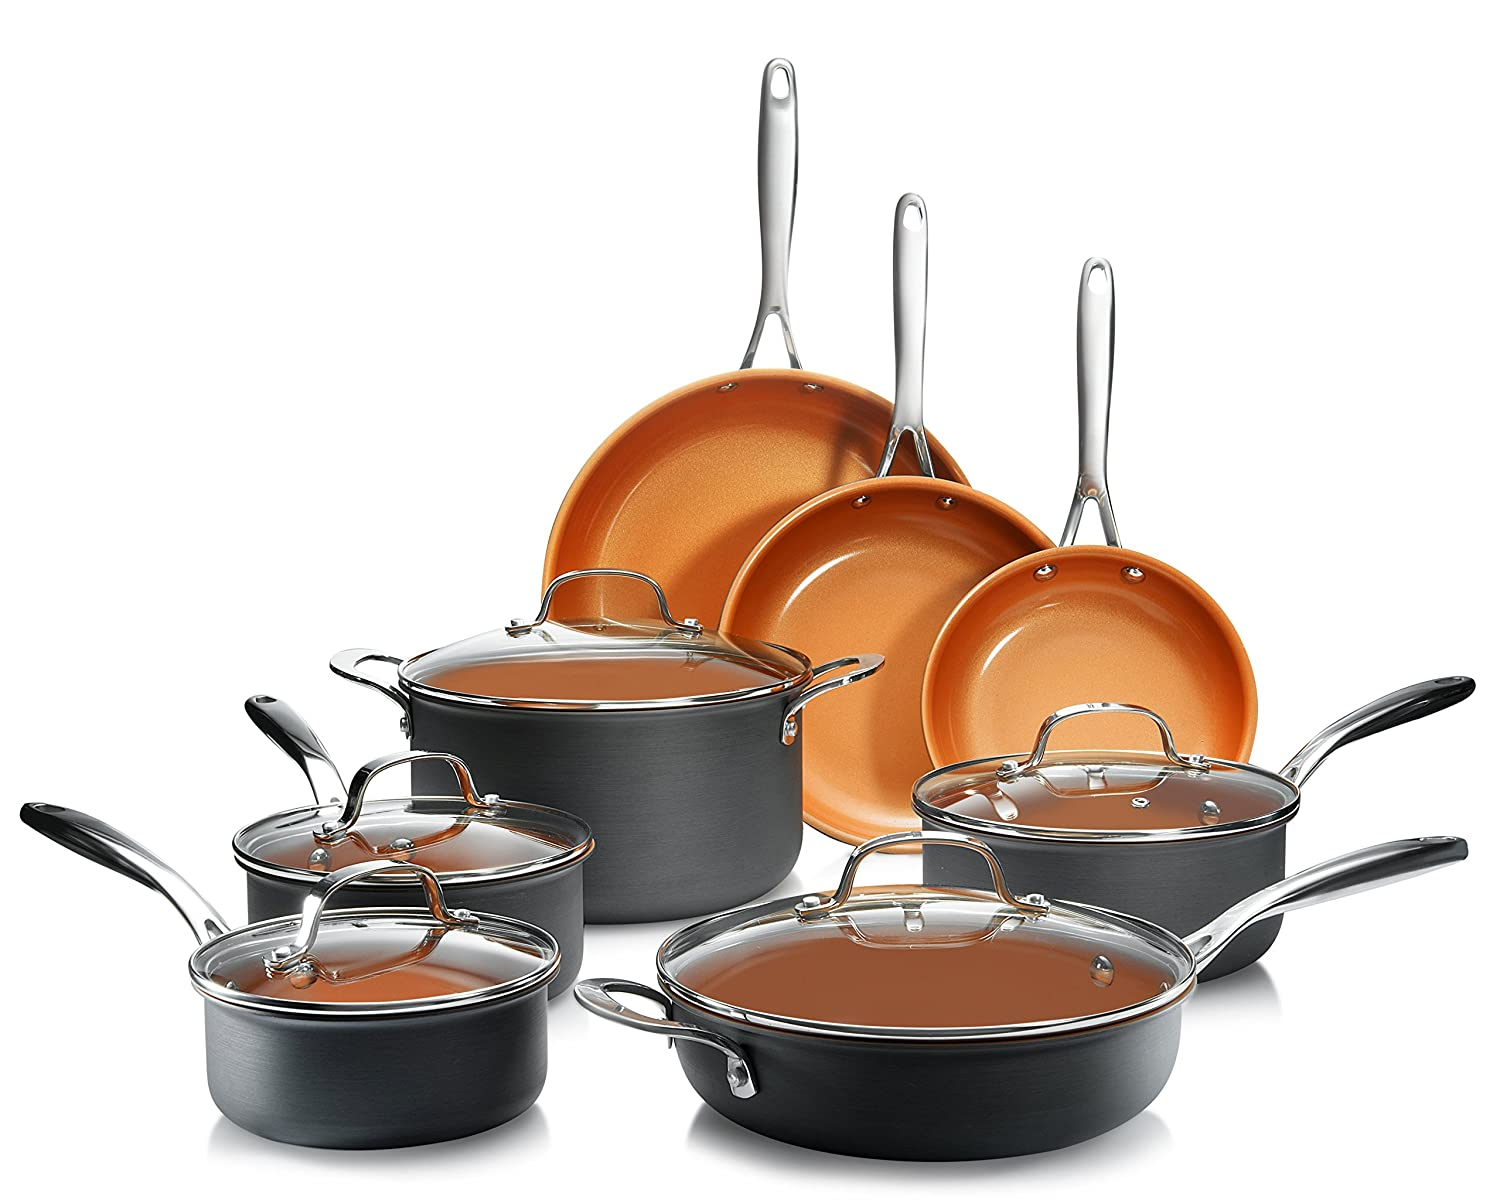 Gotham Steel Professional 13 Piece Hard Anodized Premium Cookware Set